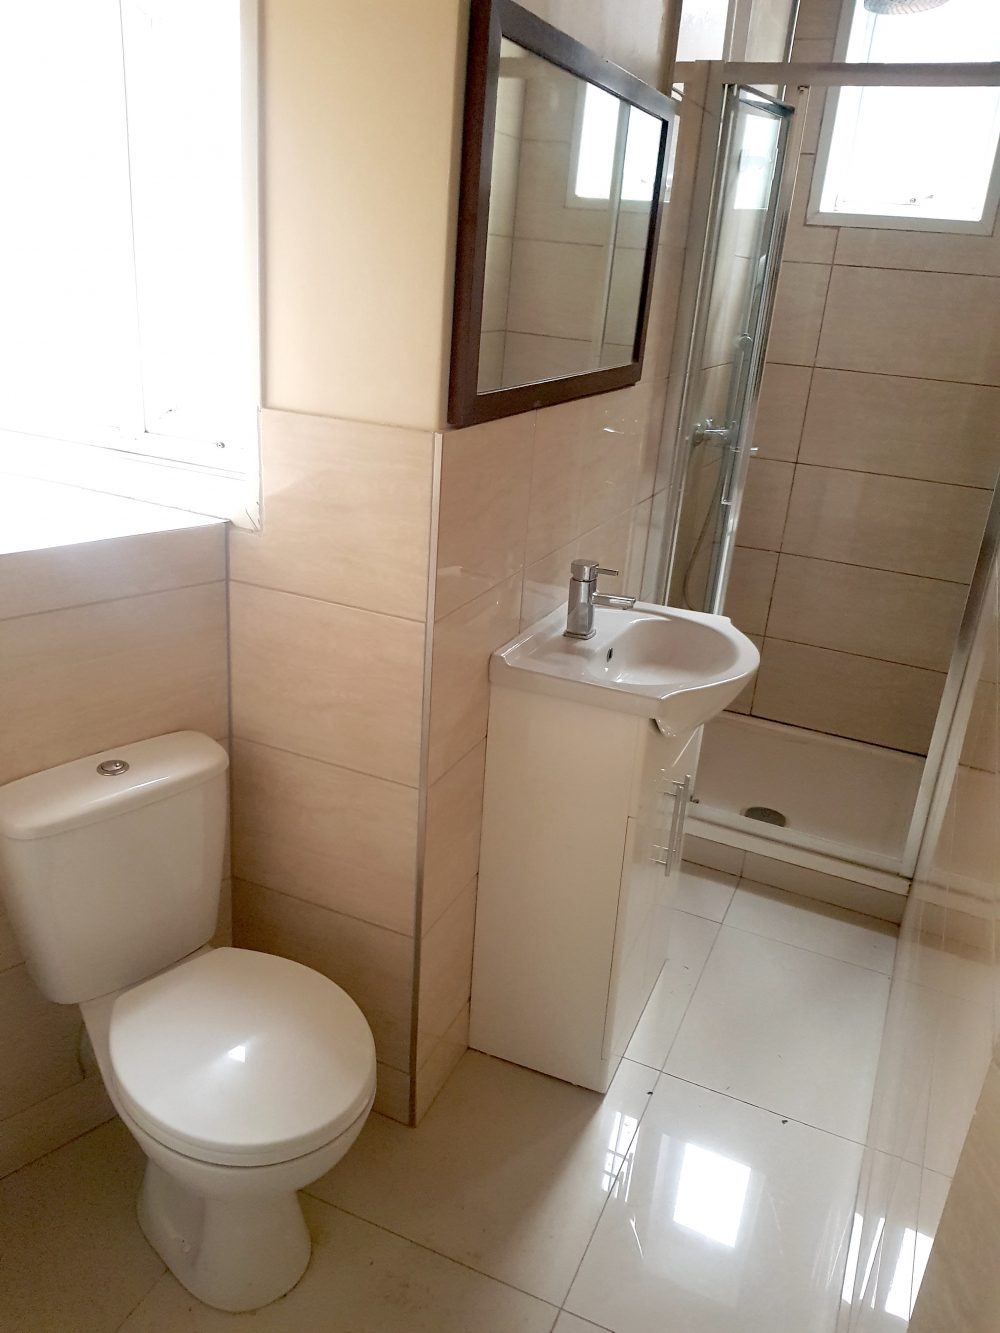 2 Bed Flat to rent in N15 Manor House Pic 17